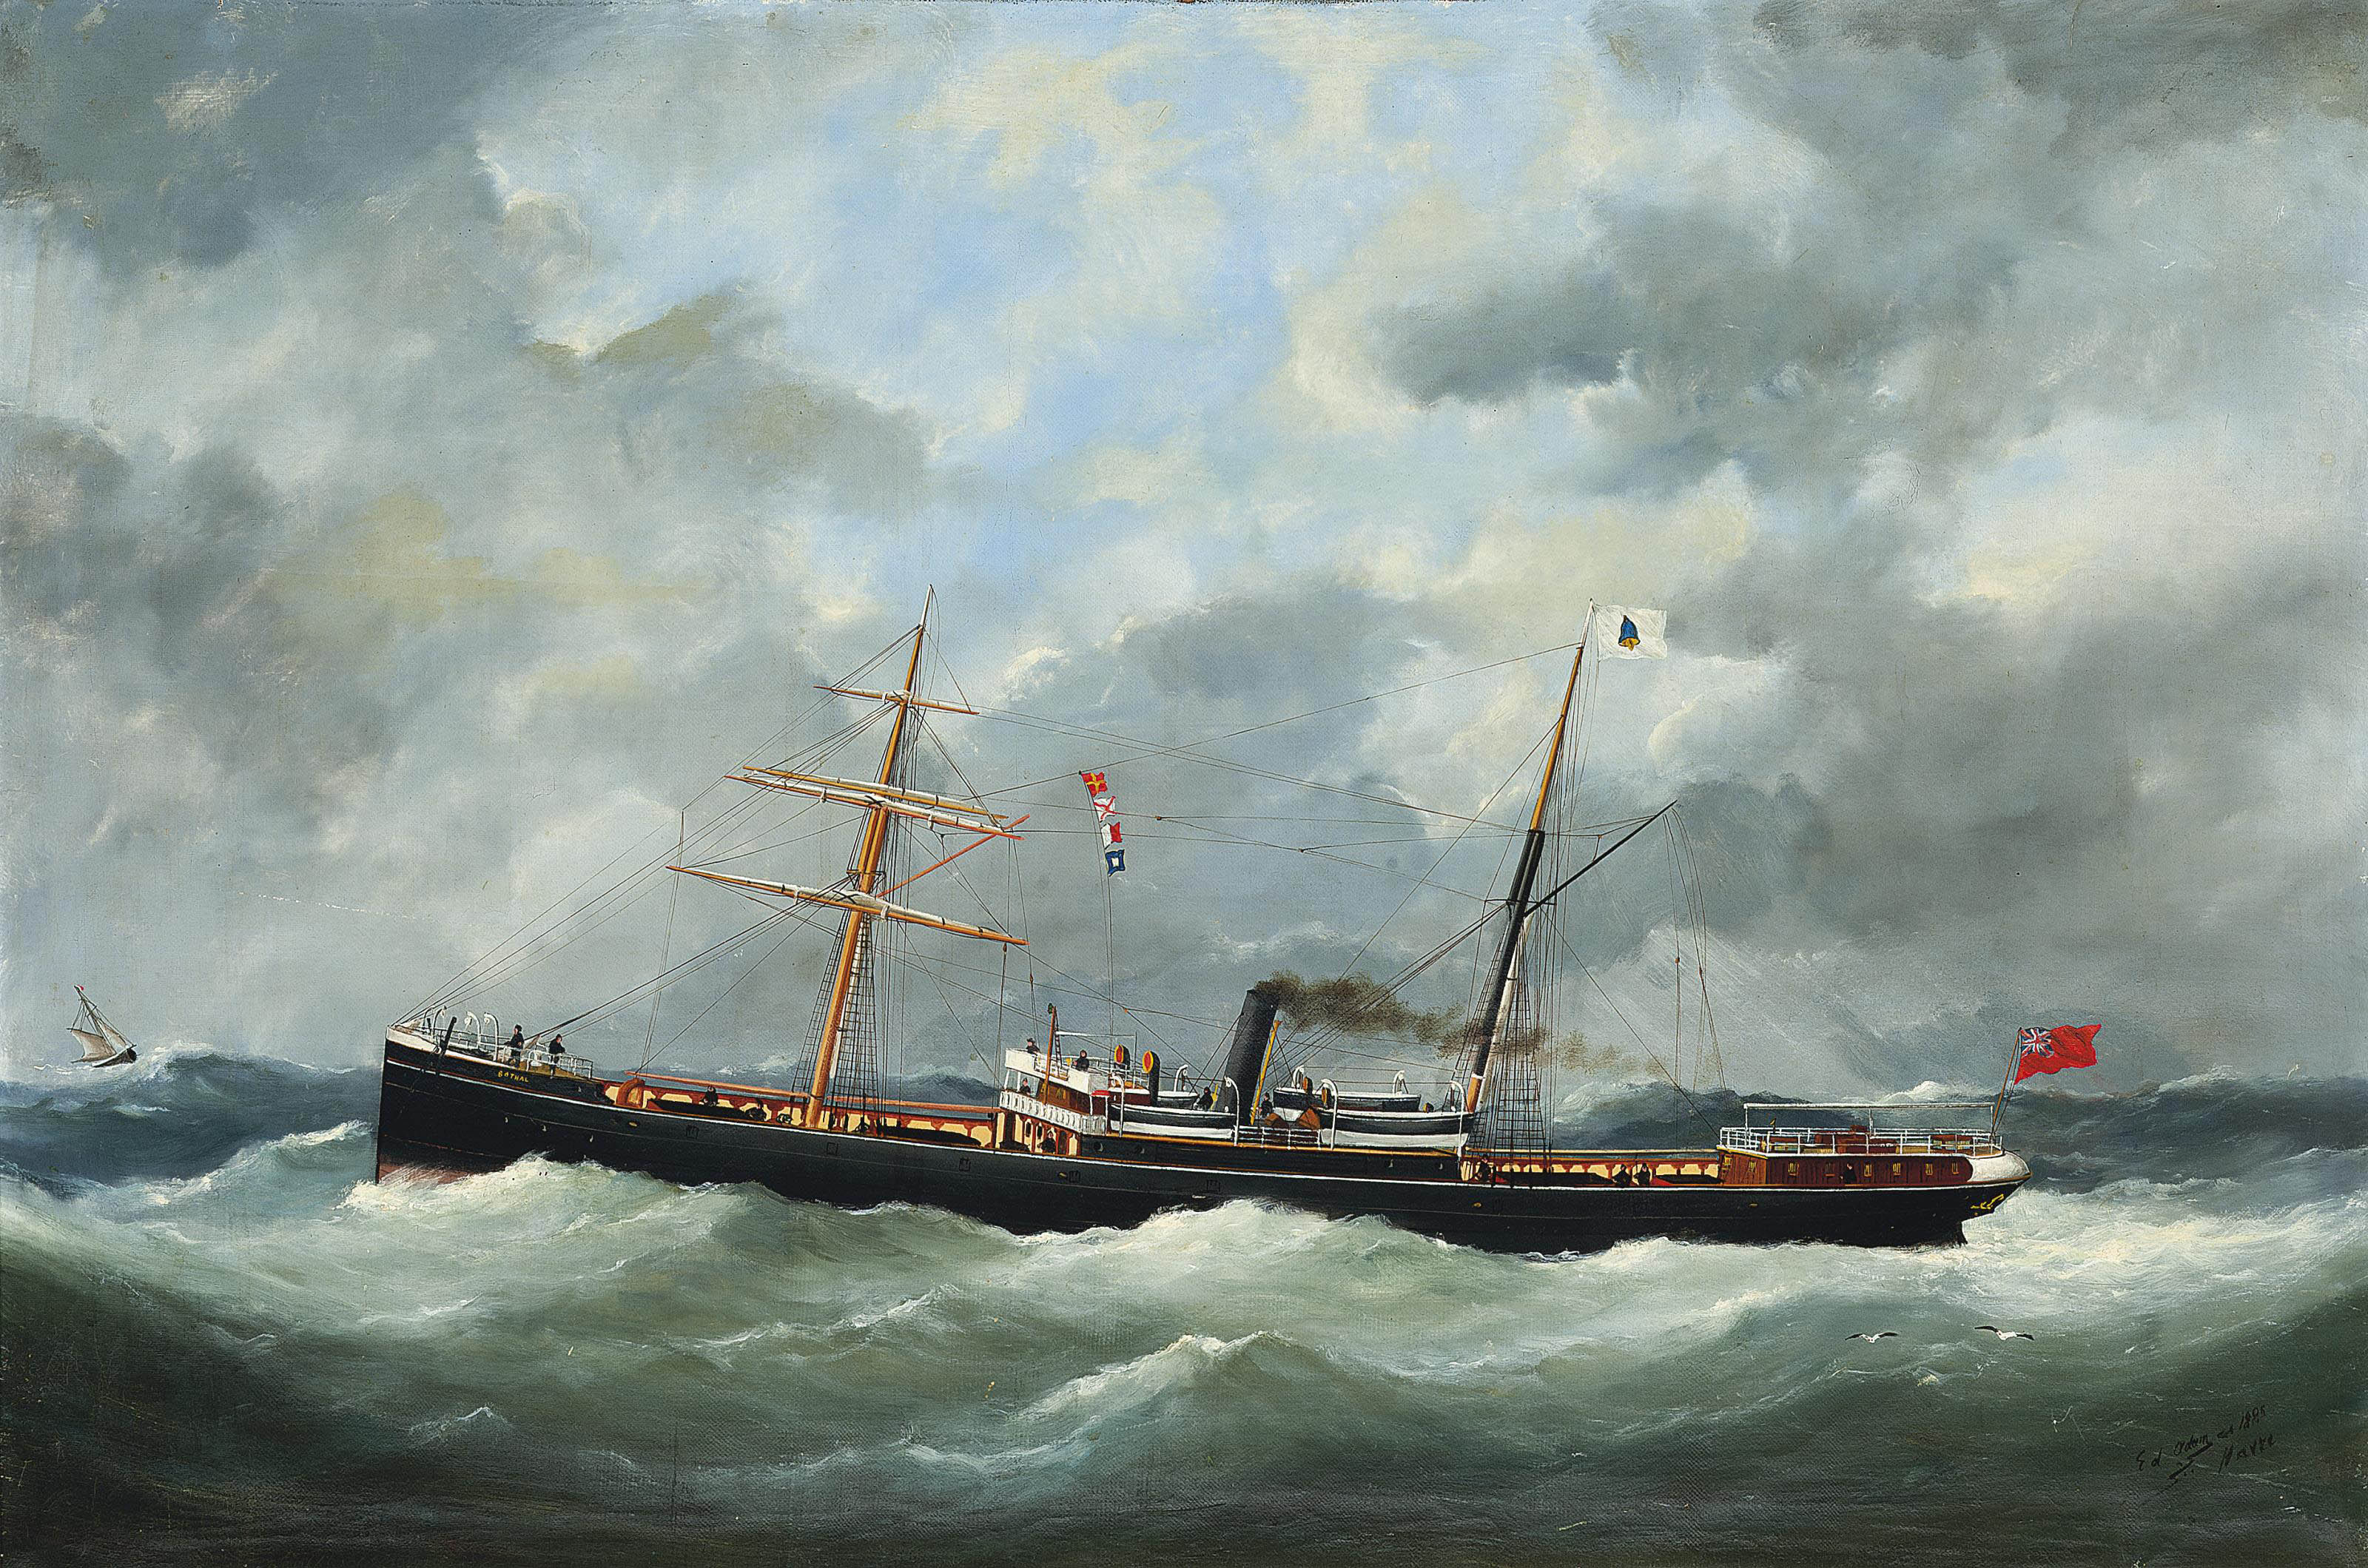 R. Bell & Co.'s steamship Bothal in a heavy swell